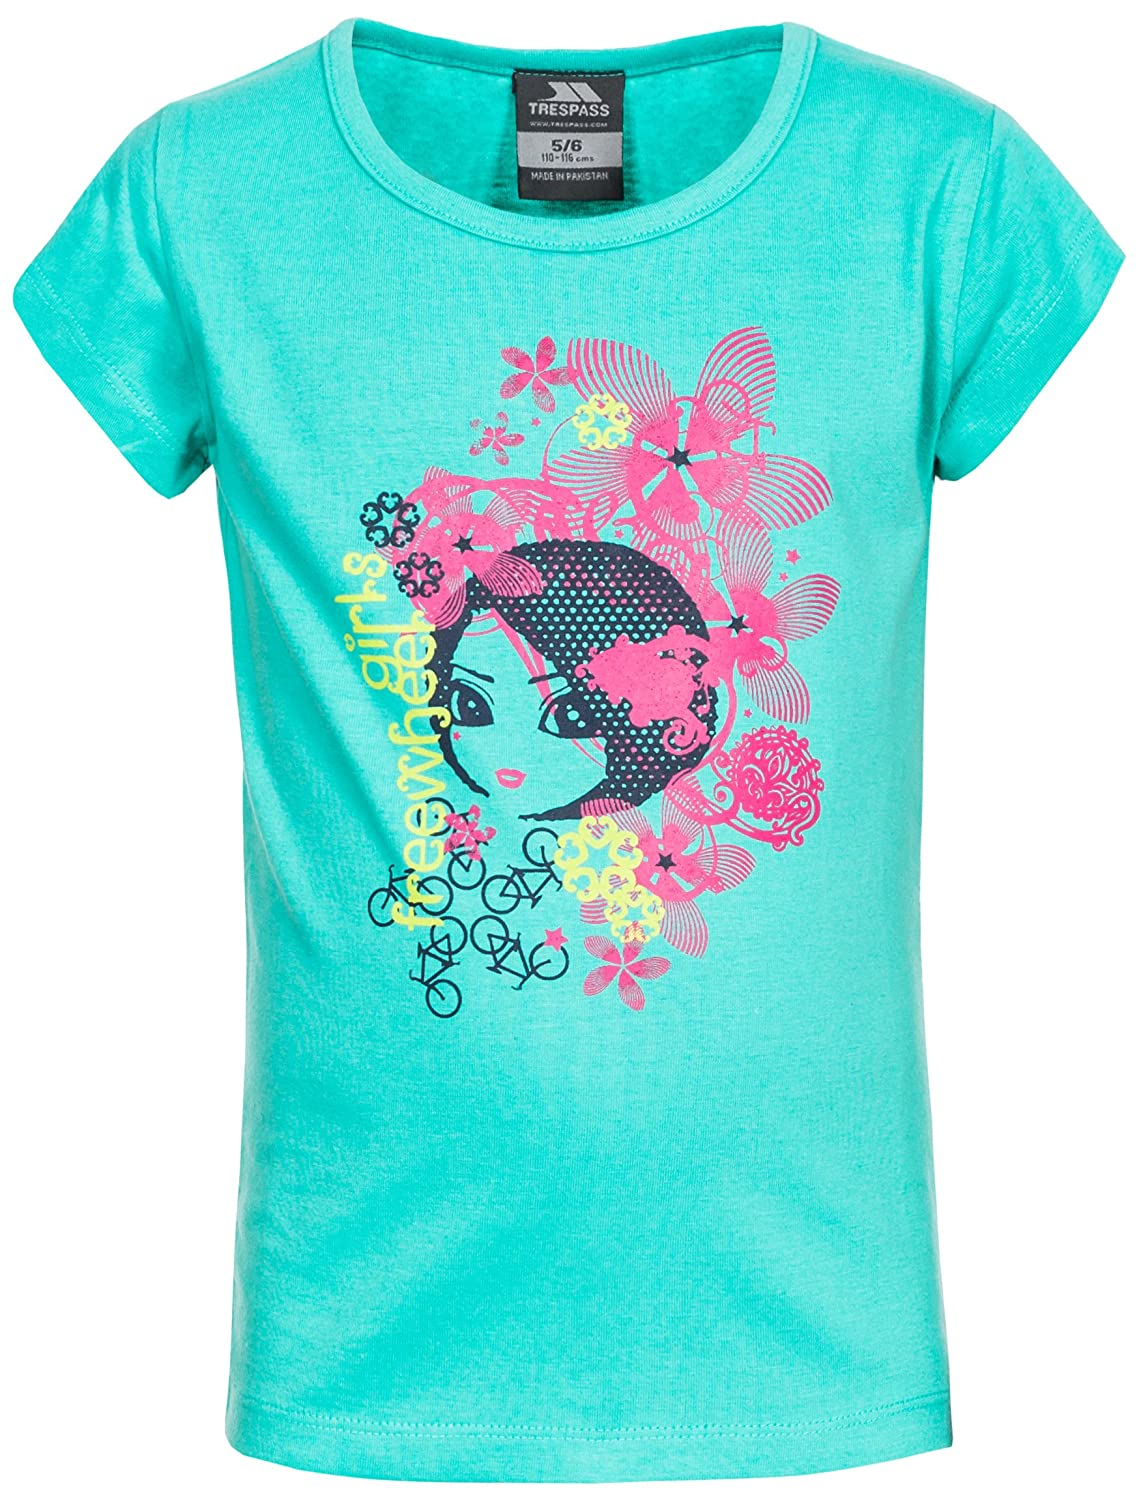 Trespass Kids Freewheel T-Shirt with Cool Frontal Print for Children Girls/Toddlers Ages 2-12 for Outdoor/Fun/Sports/Leisure